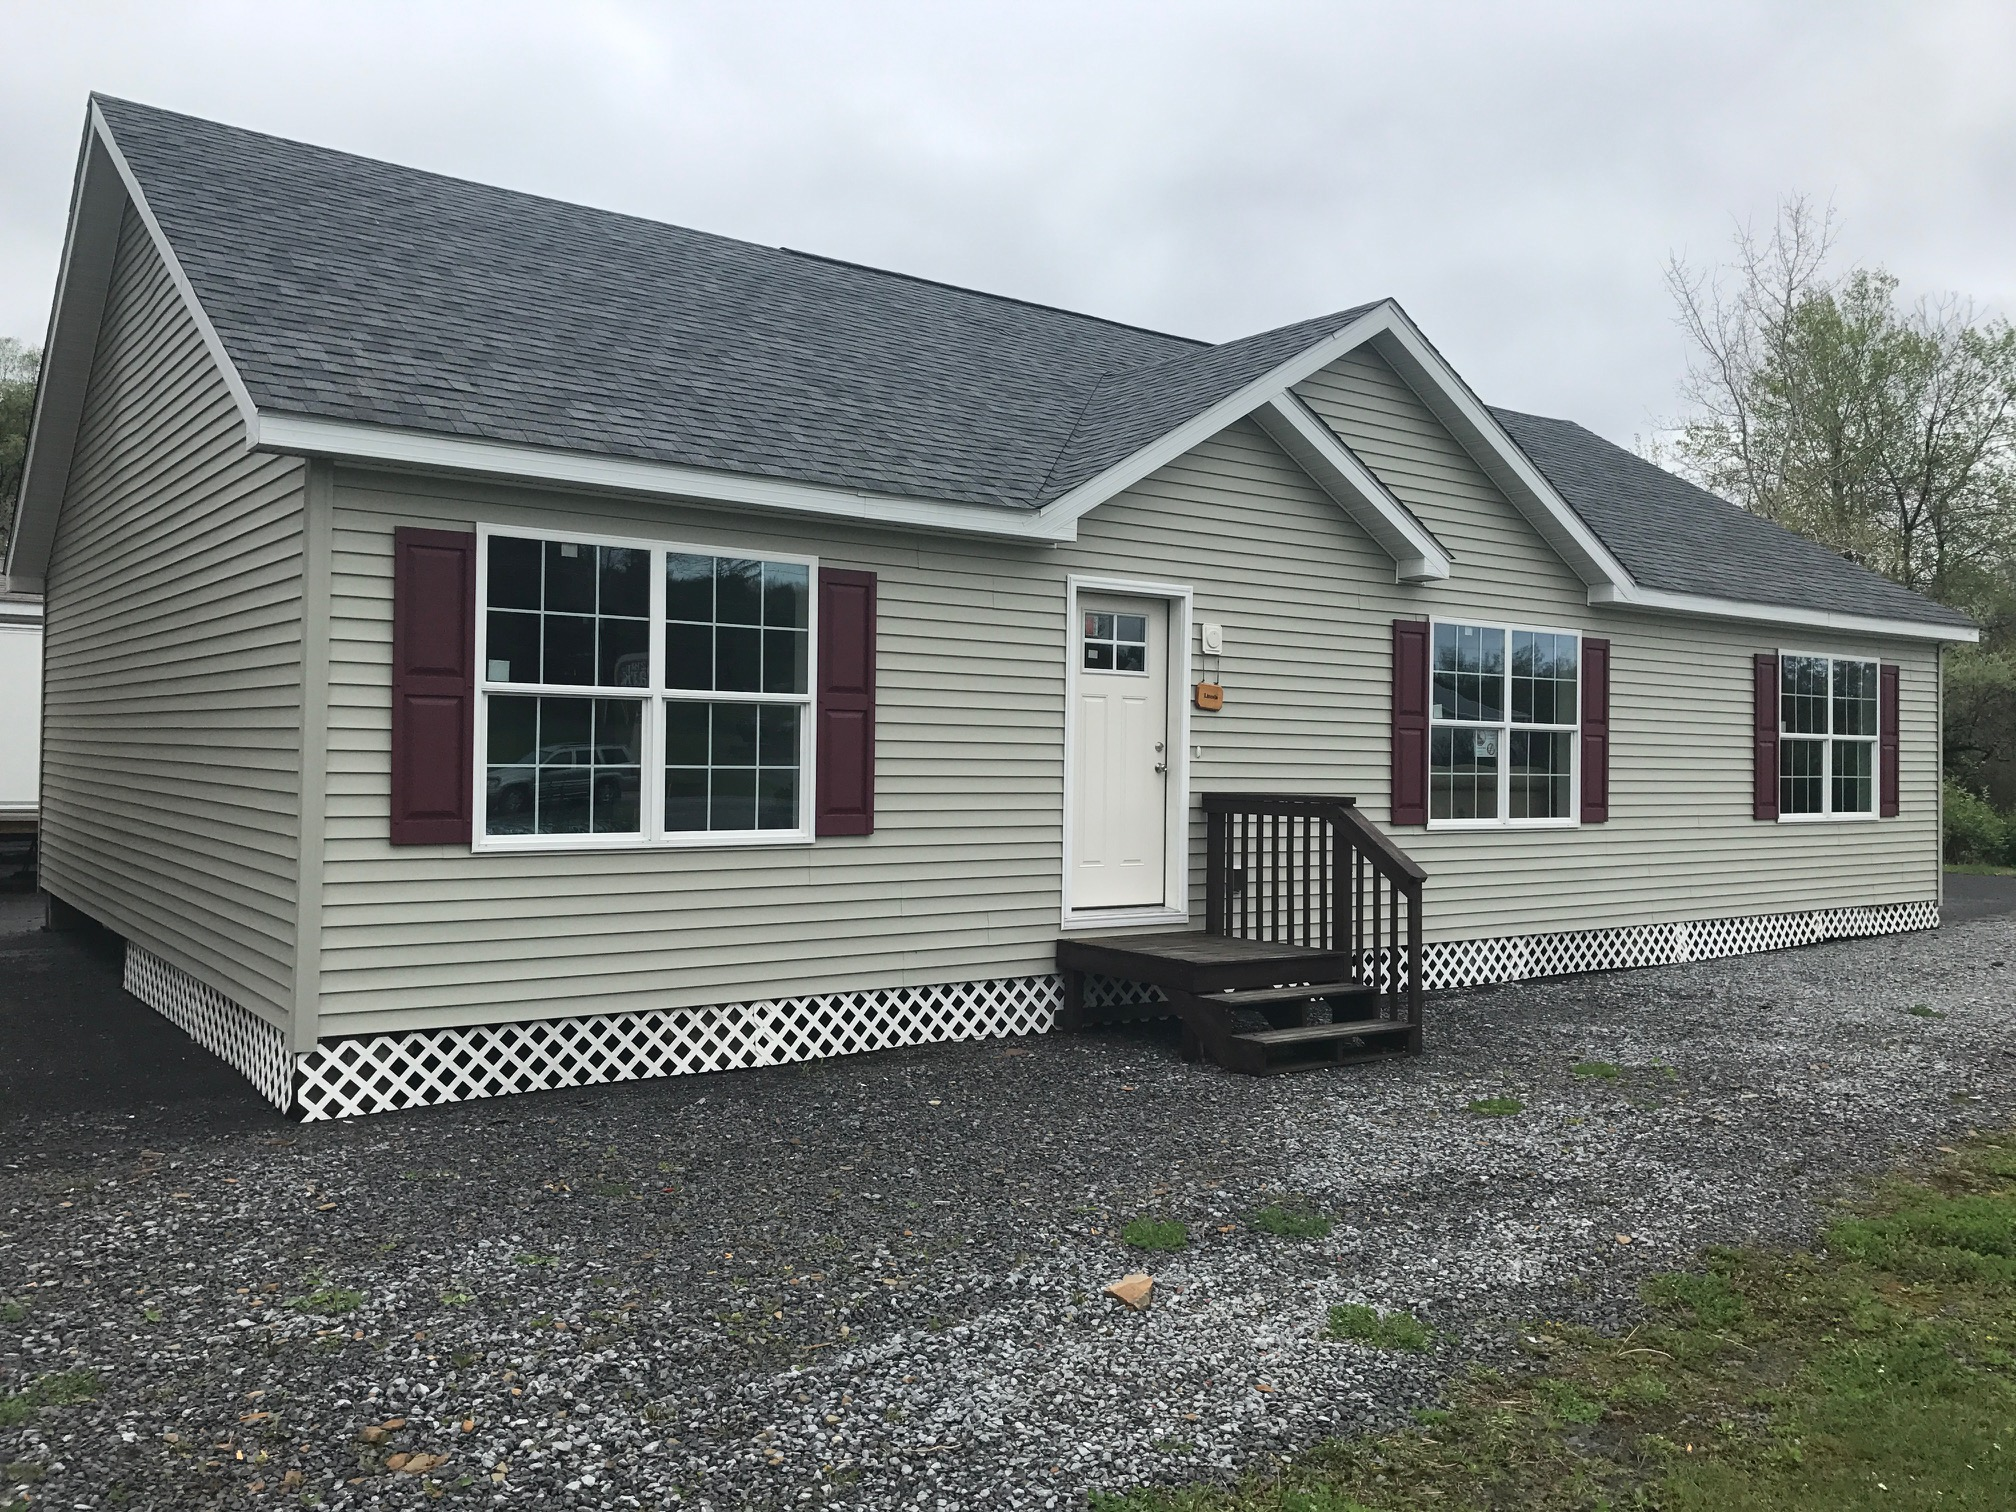 Modular Homes for Sale in Brockway, Pennsylvania at